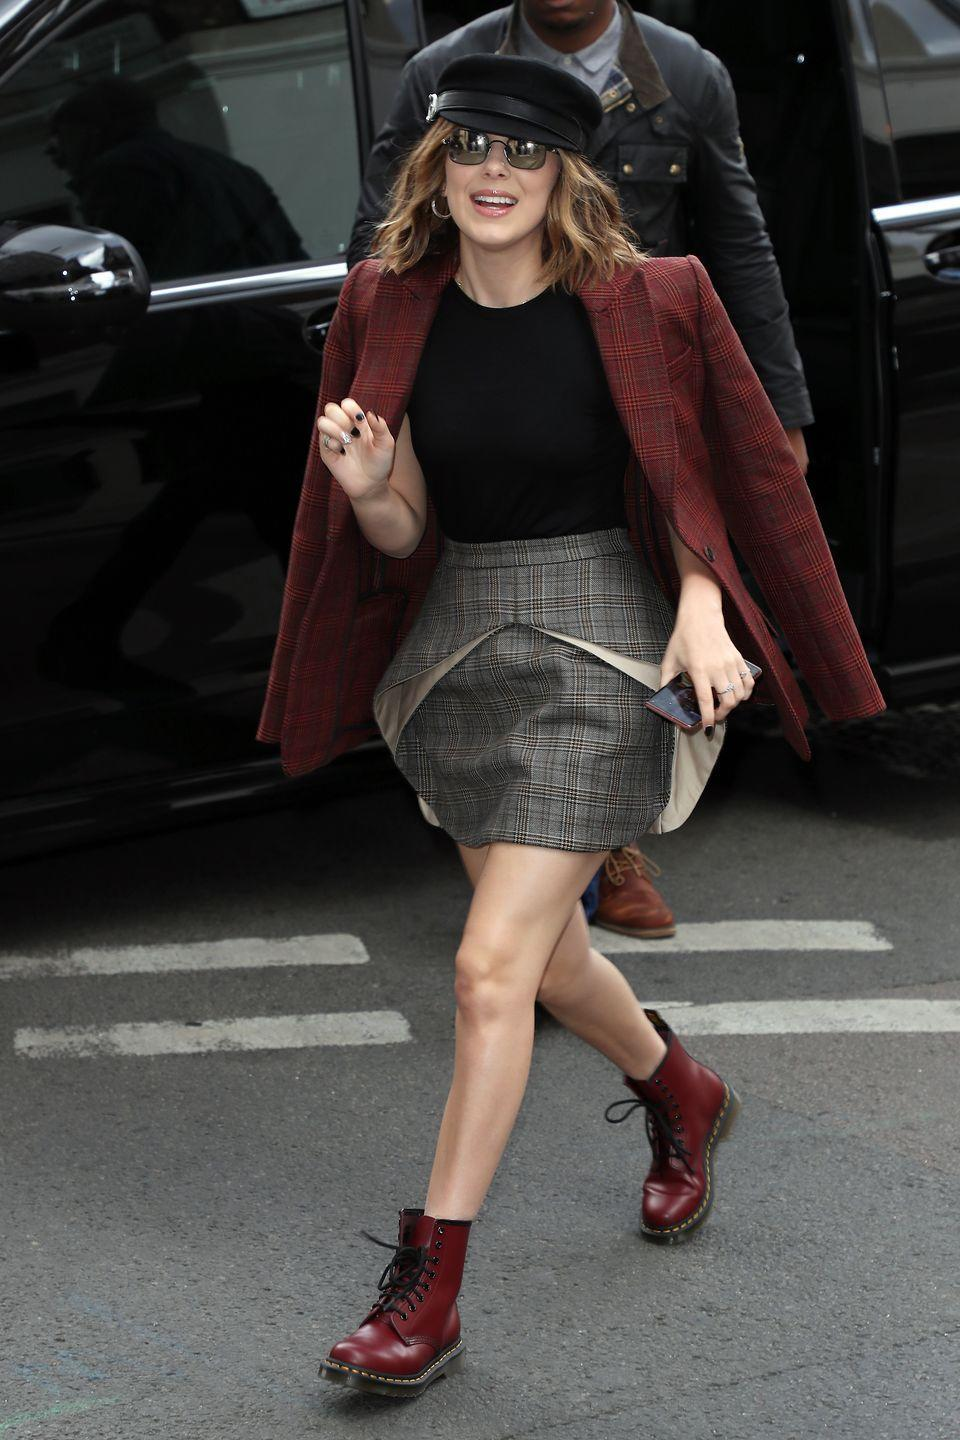 <p>Perhaps previewing her fall fashion to come, Millie Bobby Brown headed to KISS FM UK radio studios in a plaid jacket and skirt, completed with burgundy combat boots and a black cap. </p>